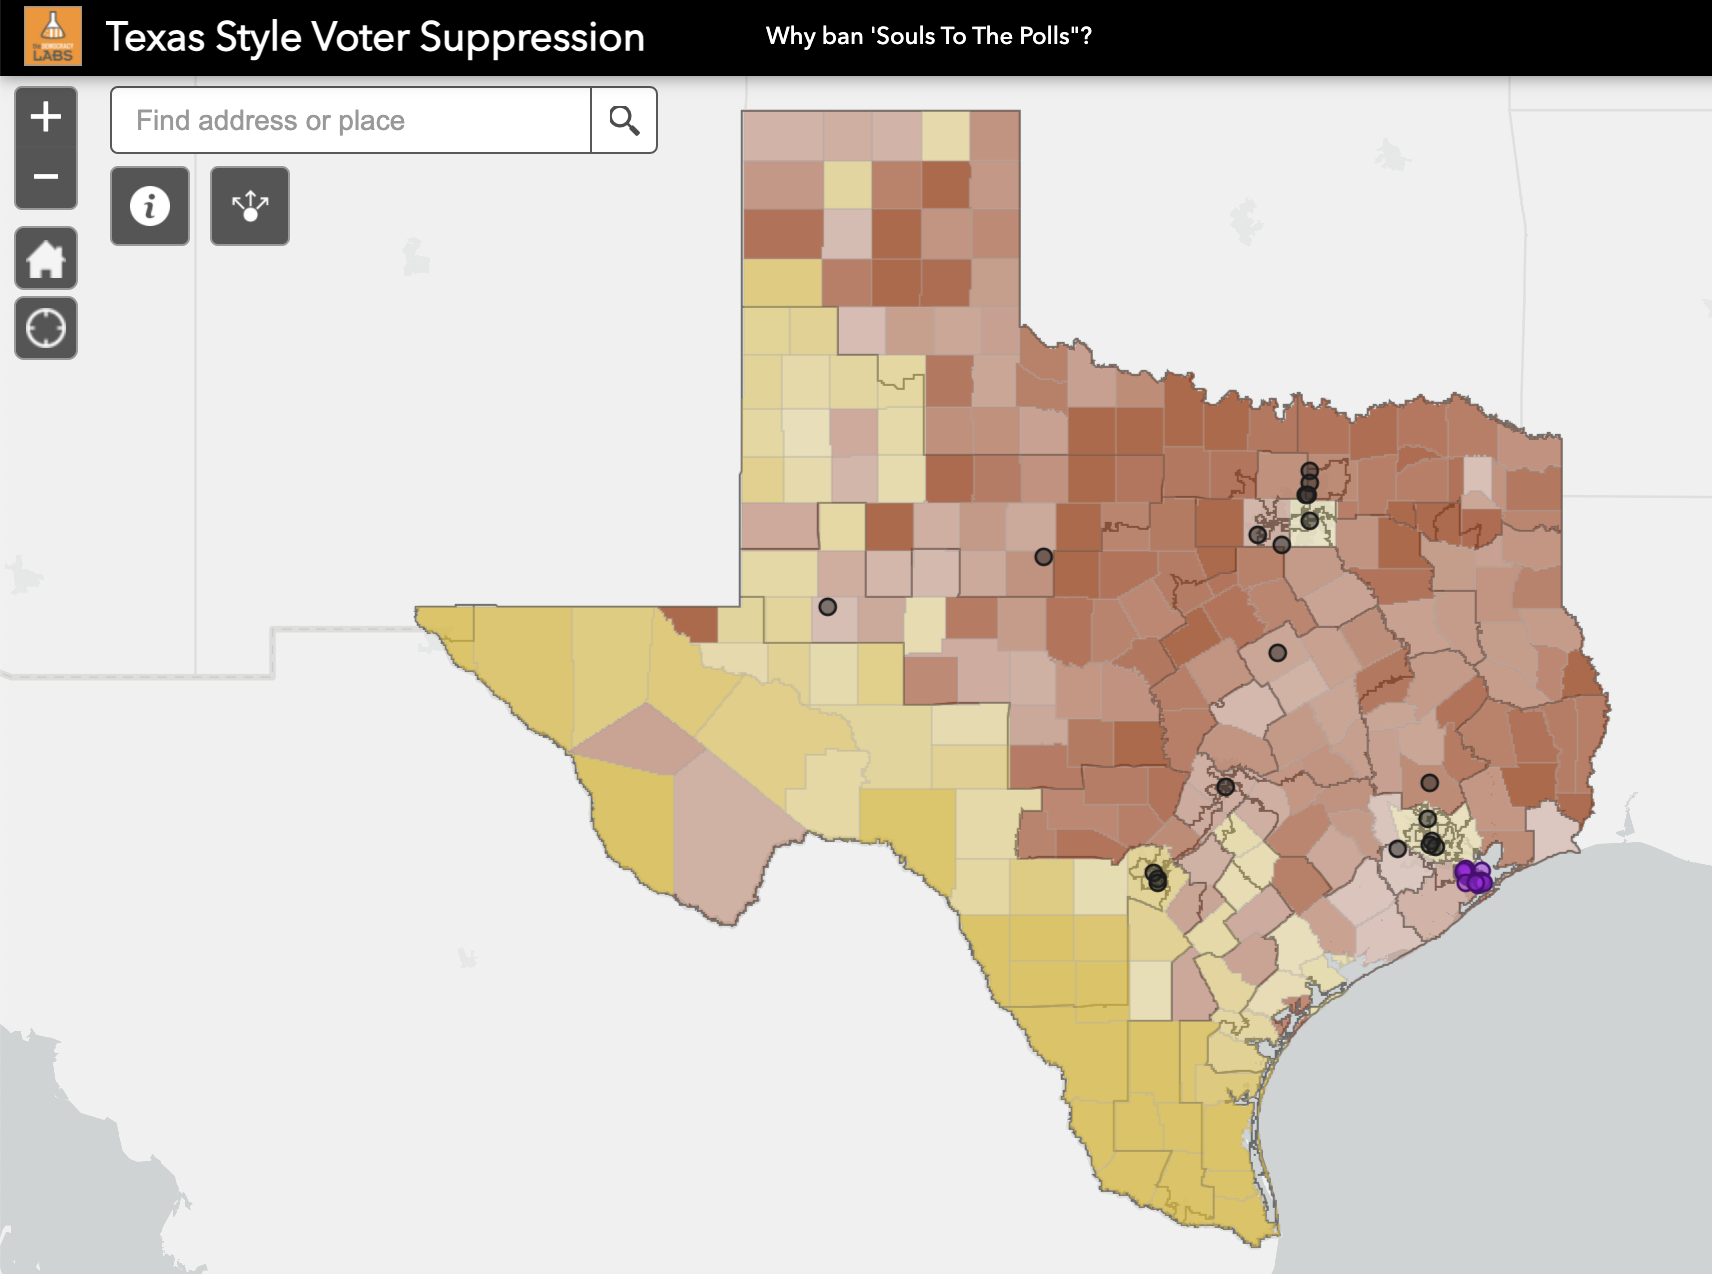 Web App shows Texas voter suppression behind banning Souls To The Polls.